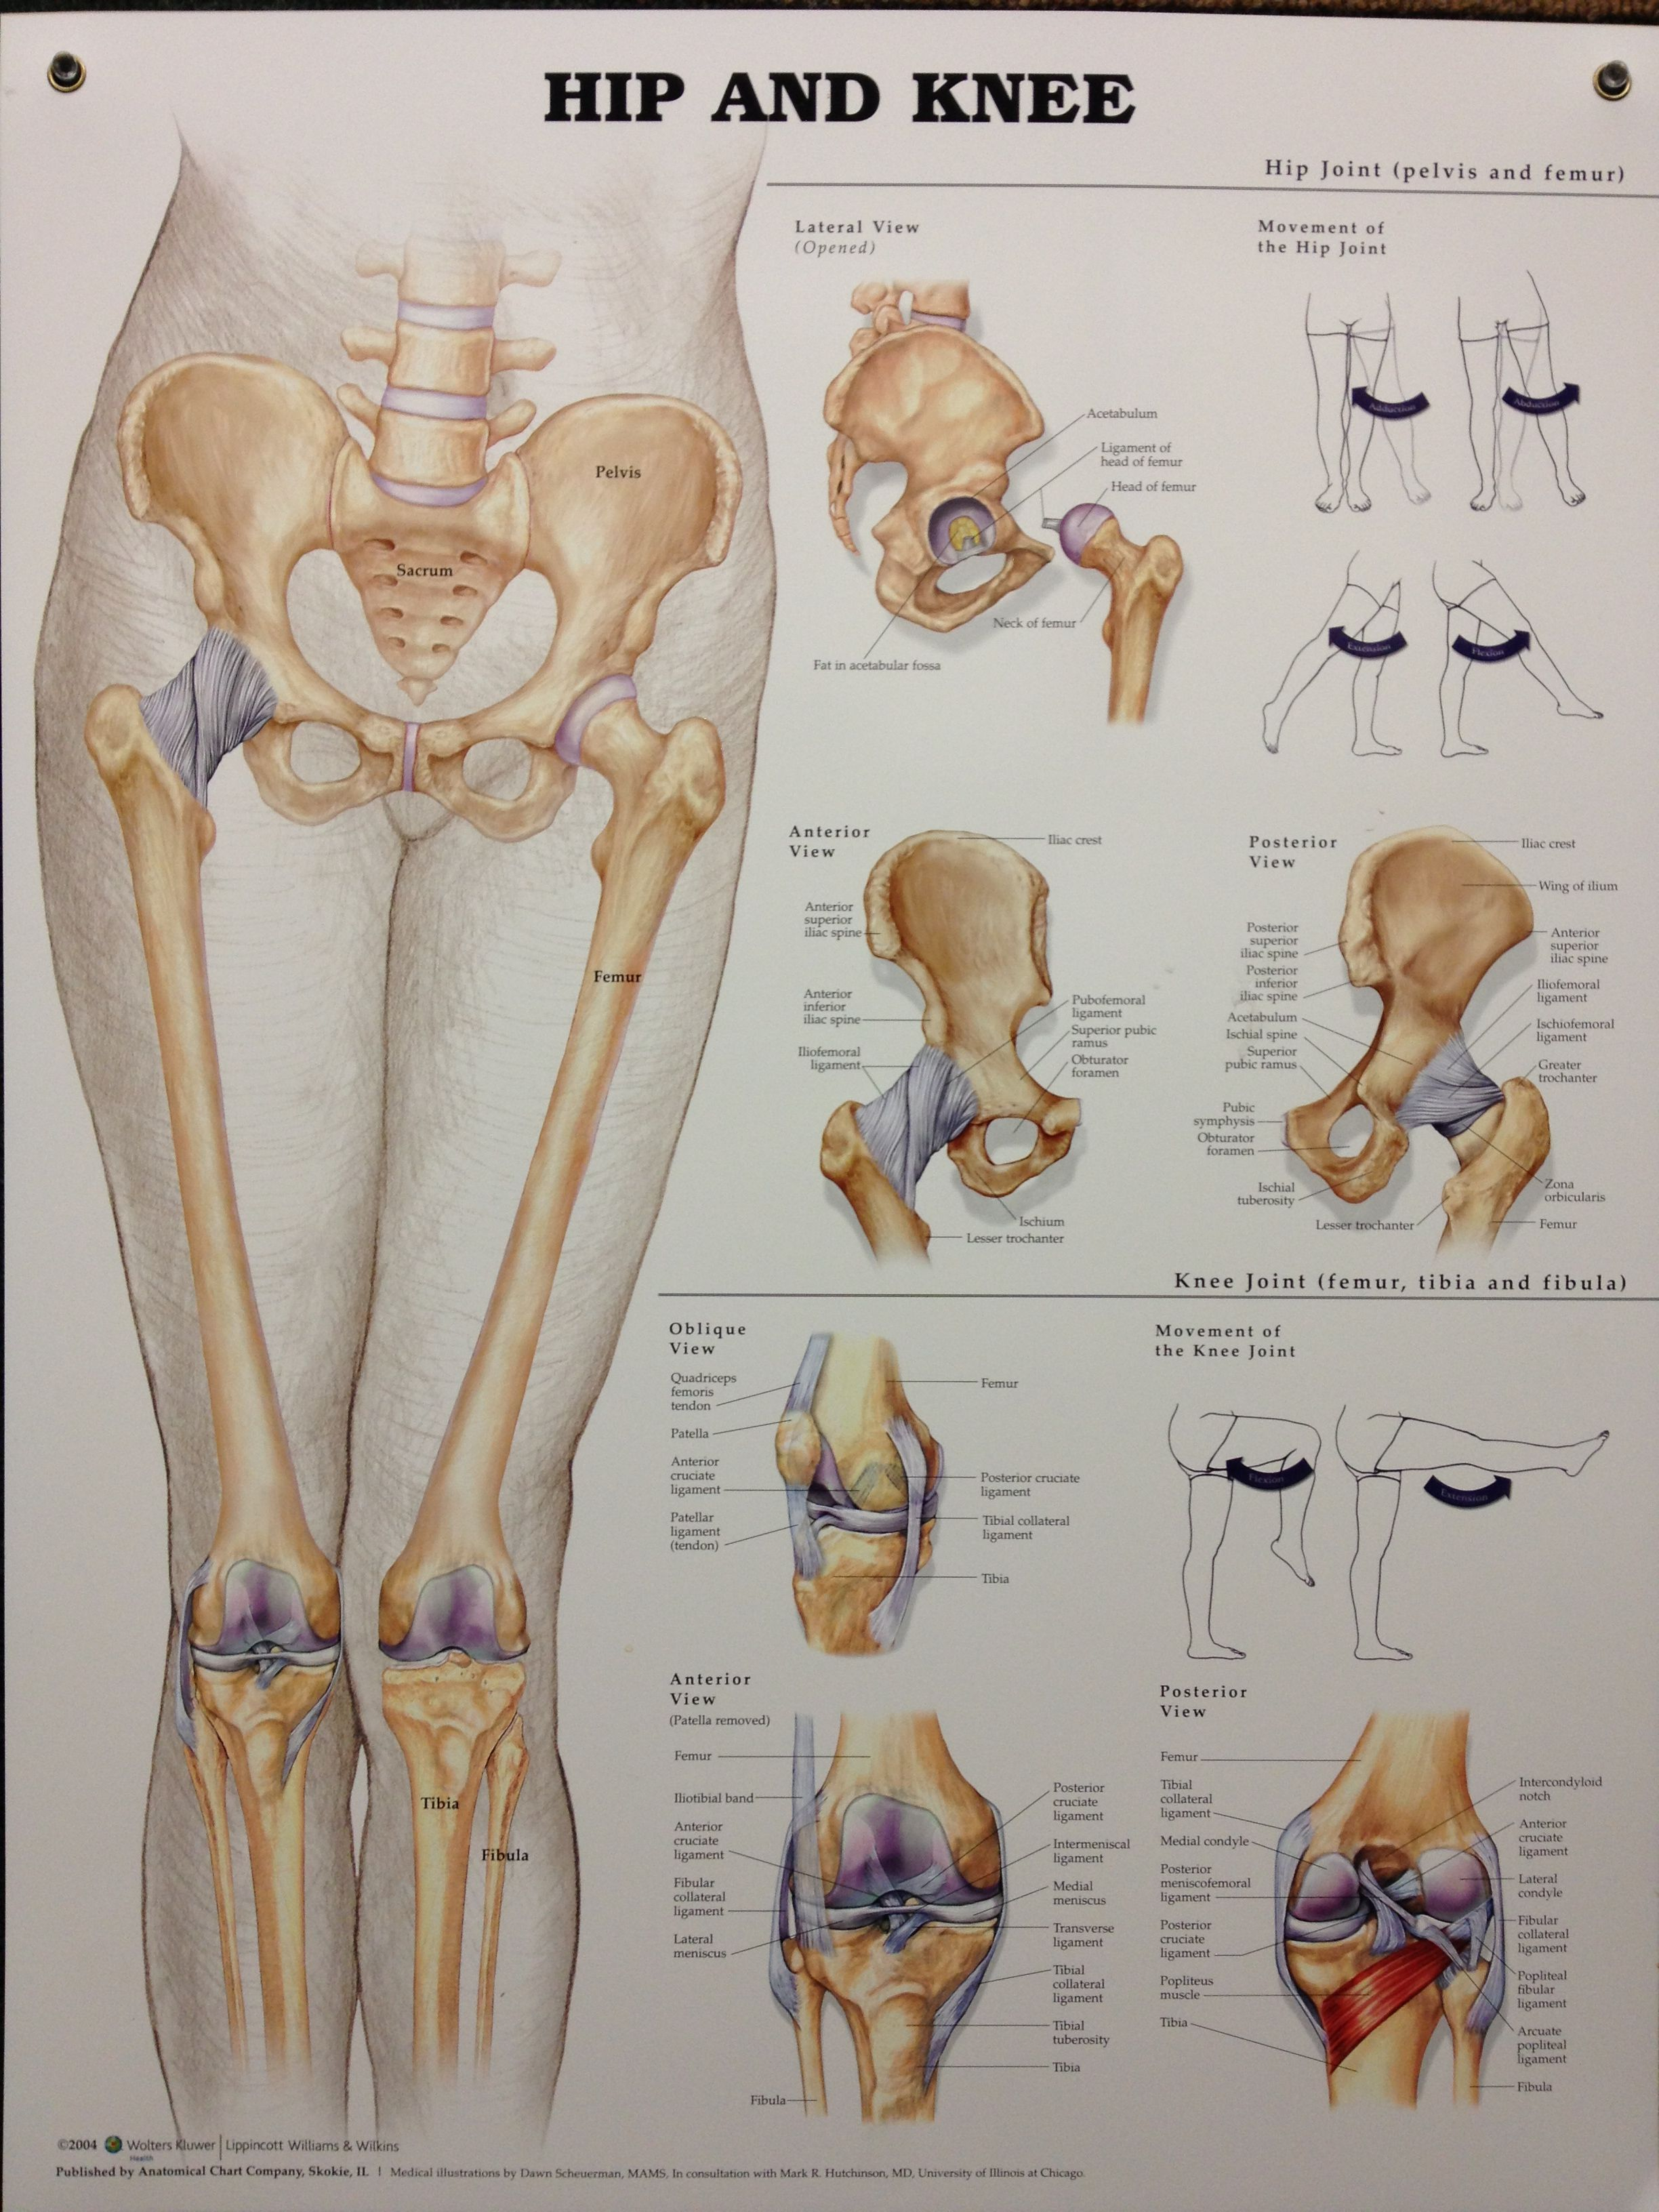 Hip & Knee | scadica | Pinterest | Anatomy, Medical and Bodies